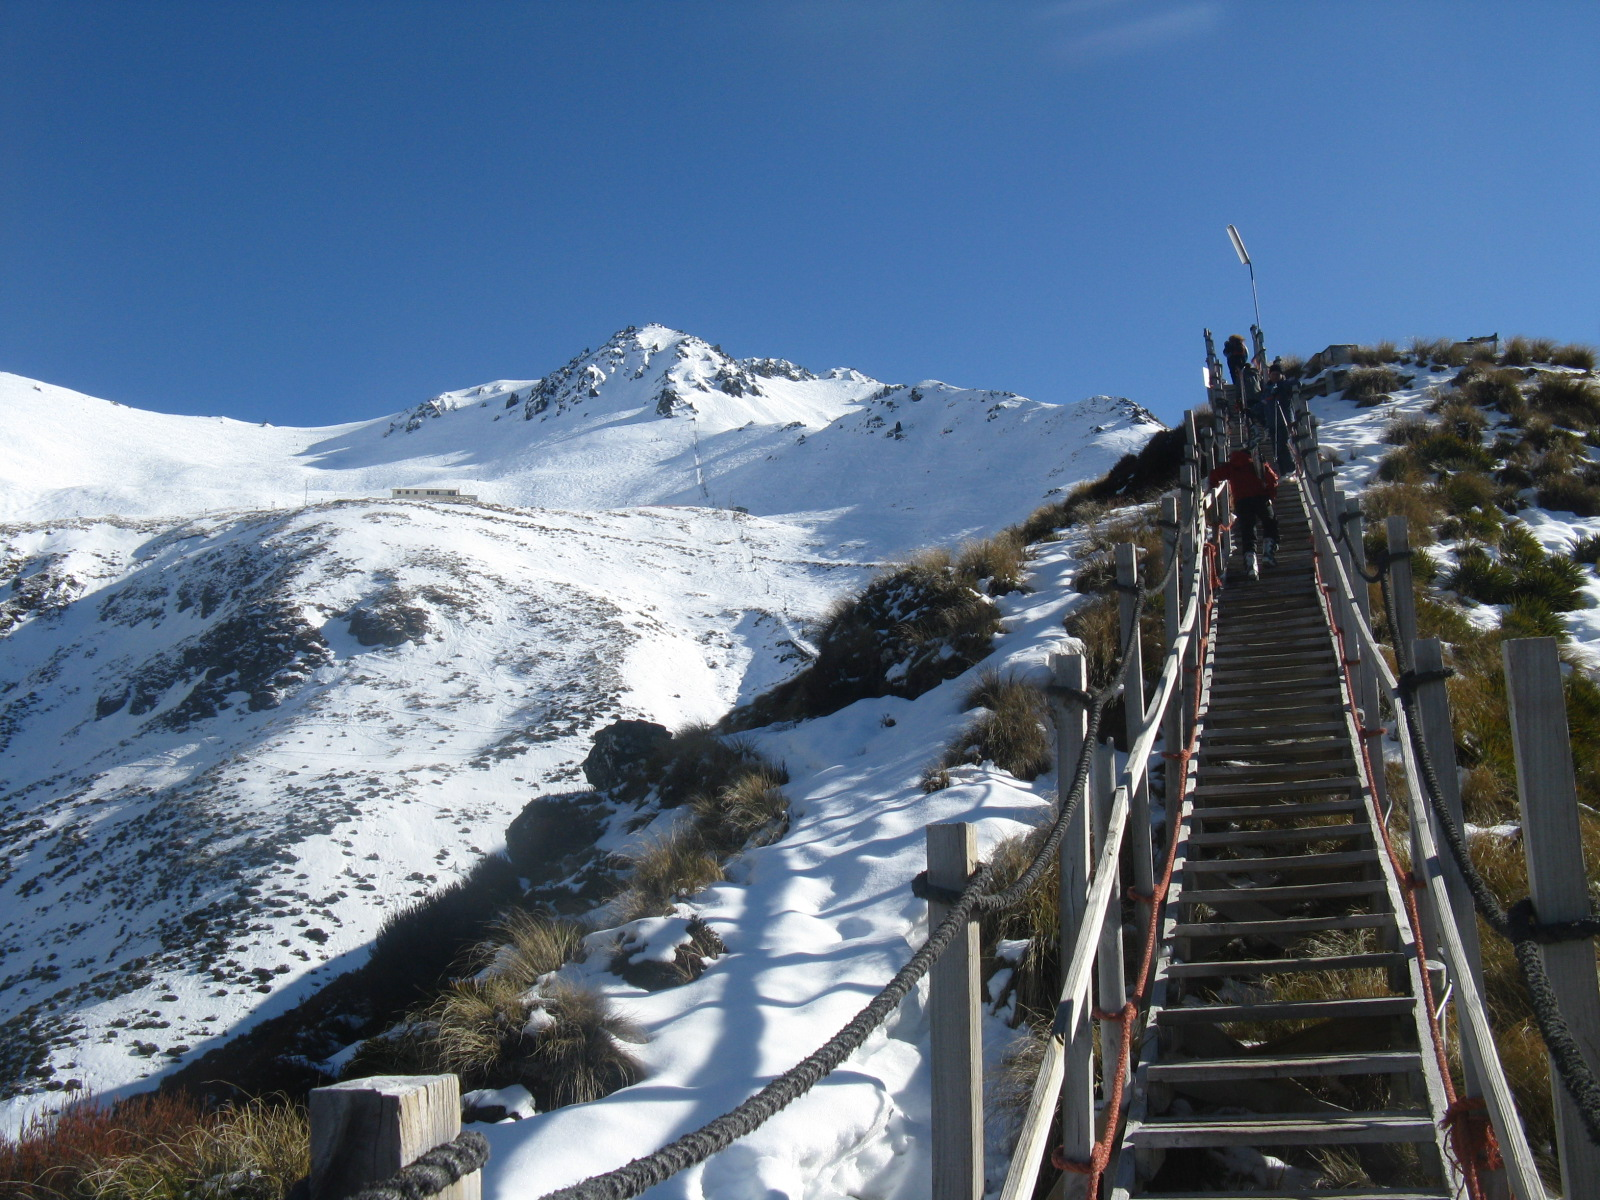 The Stairway To Heaven at Broken River Ski Club in New Zealand